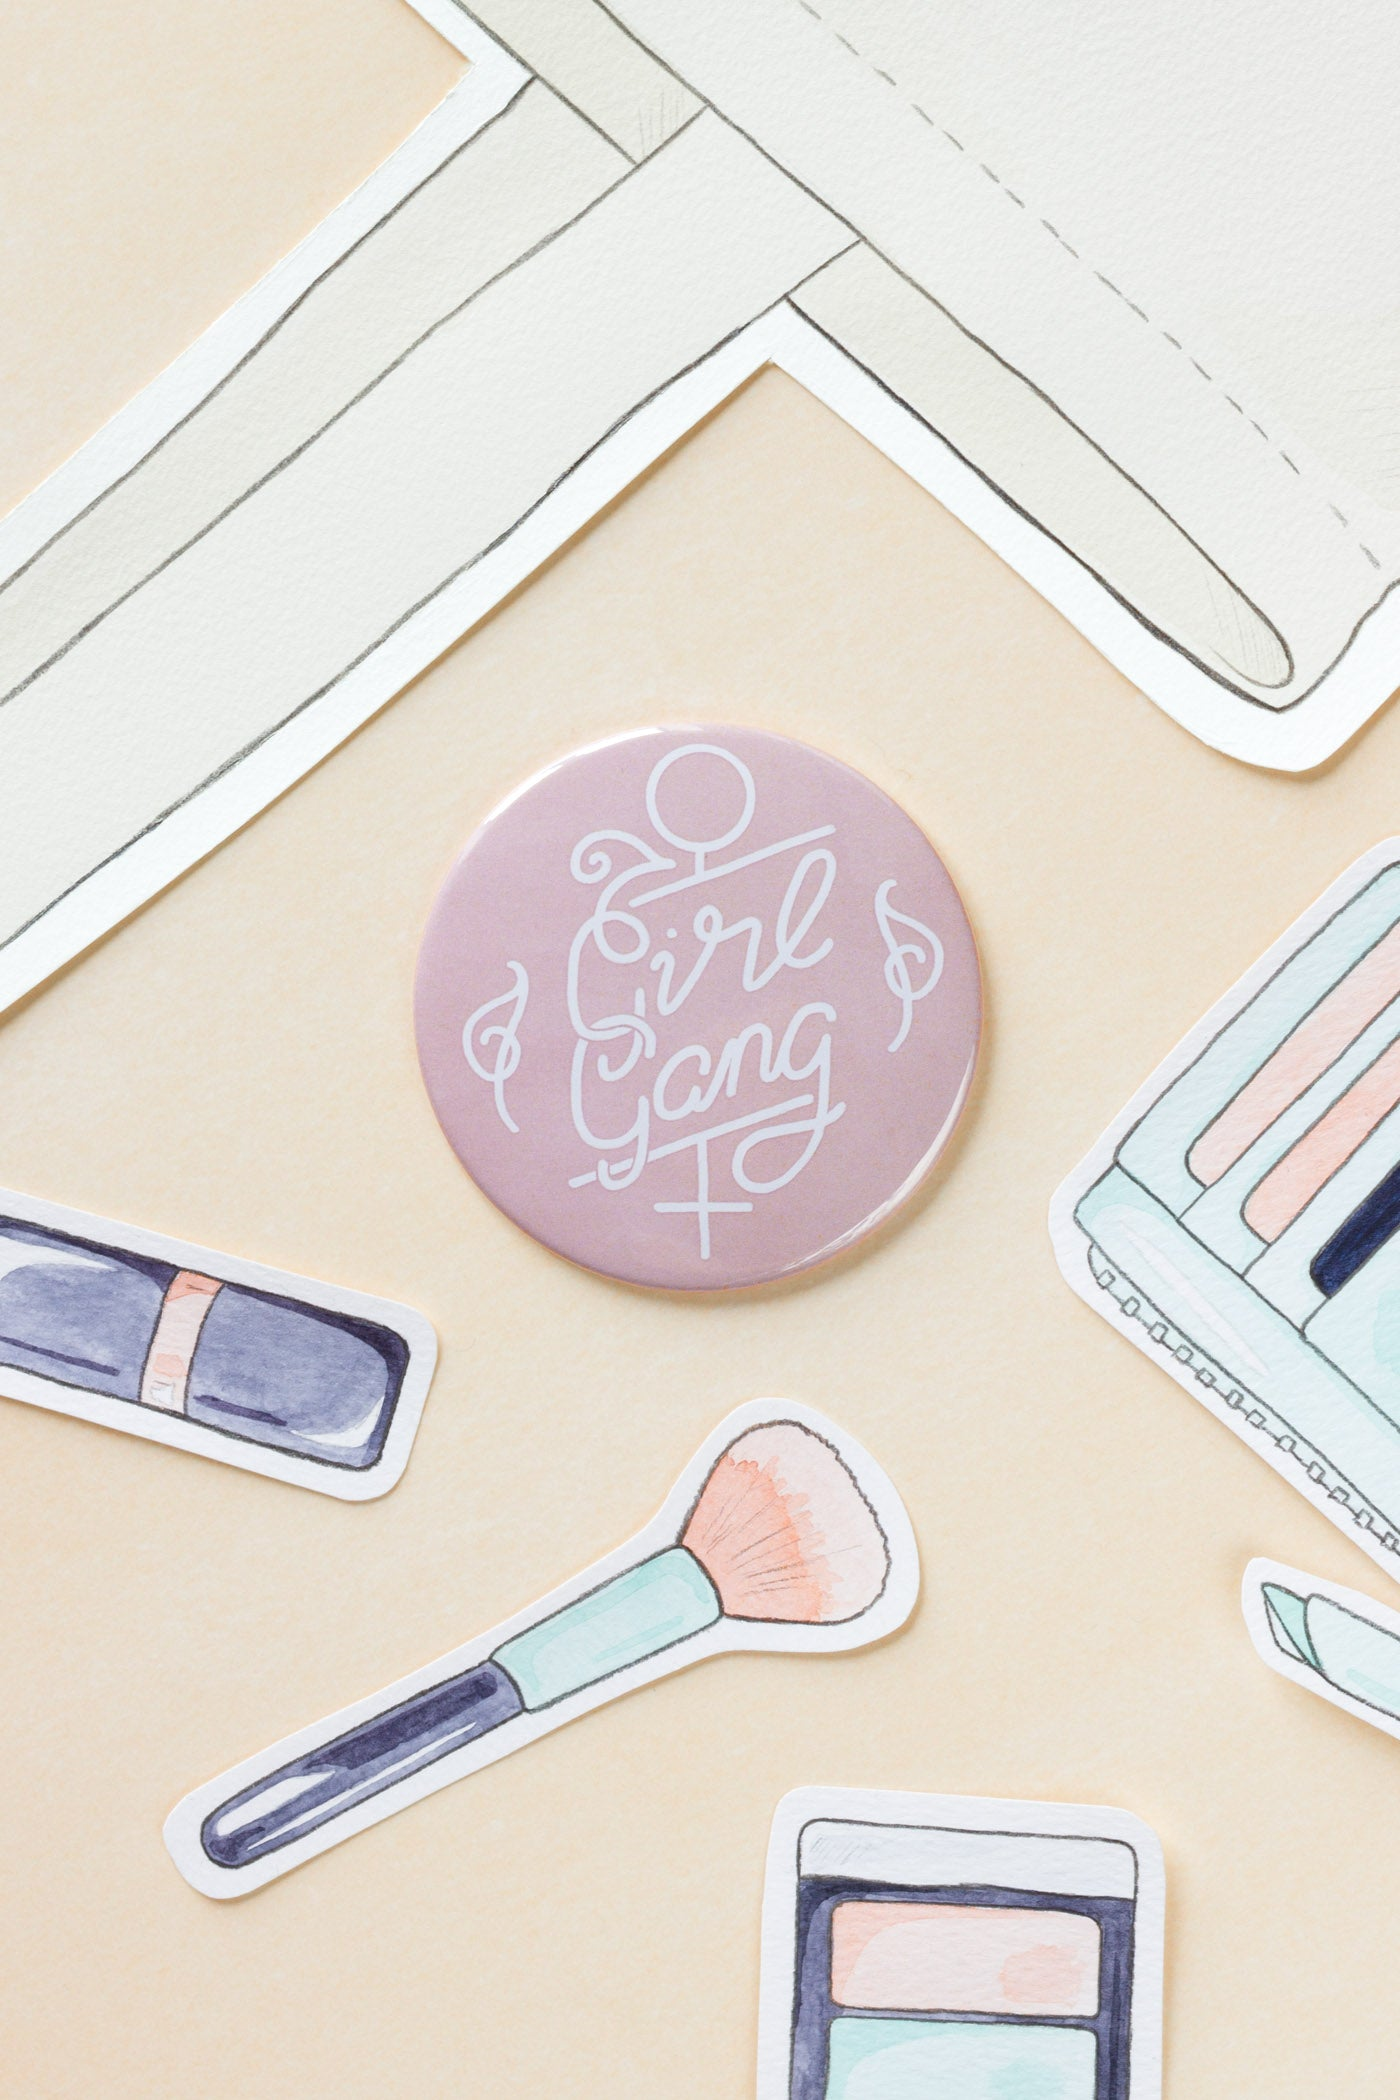 Girl Gang / Feminist Pocket Mirror - A Rose Cast